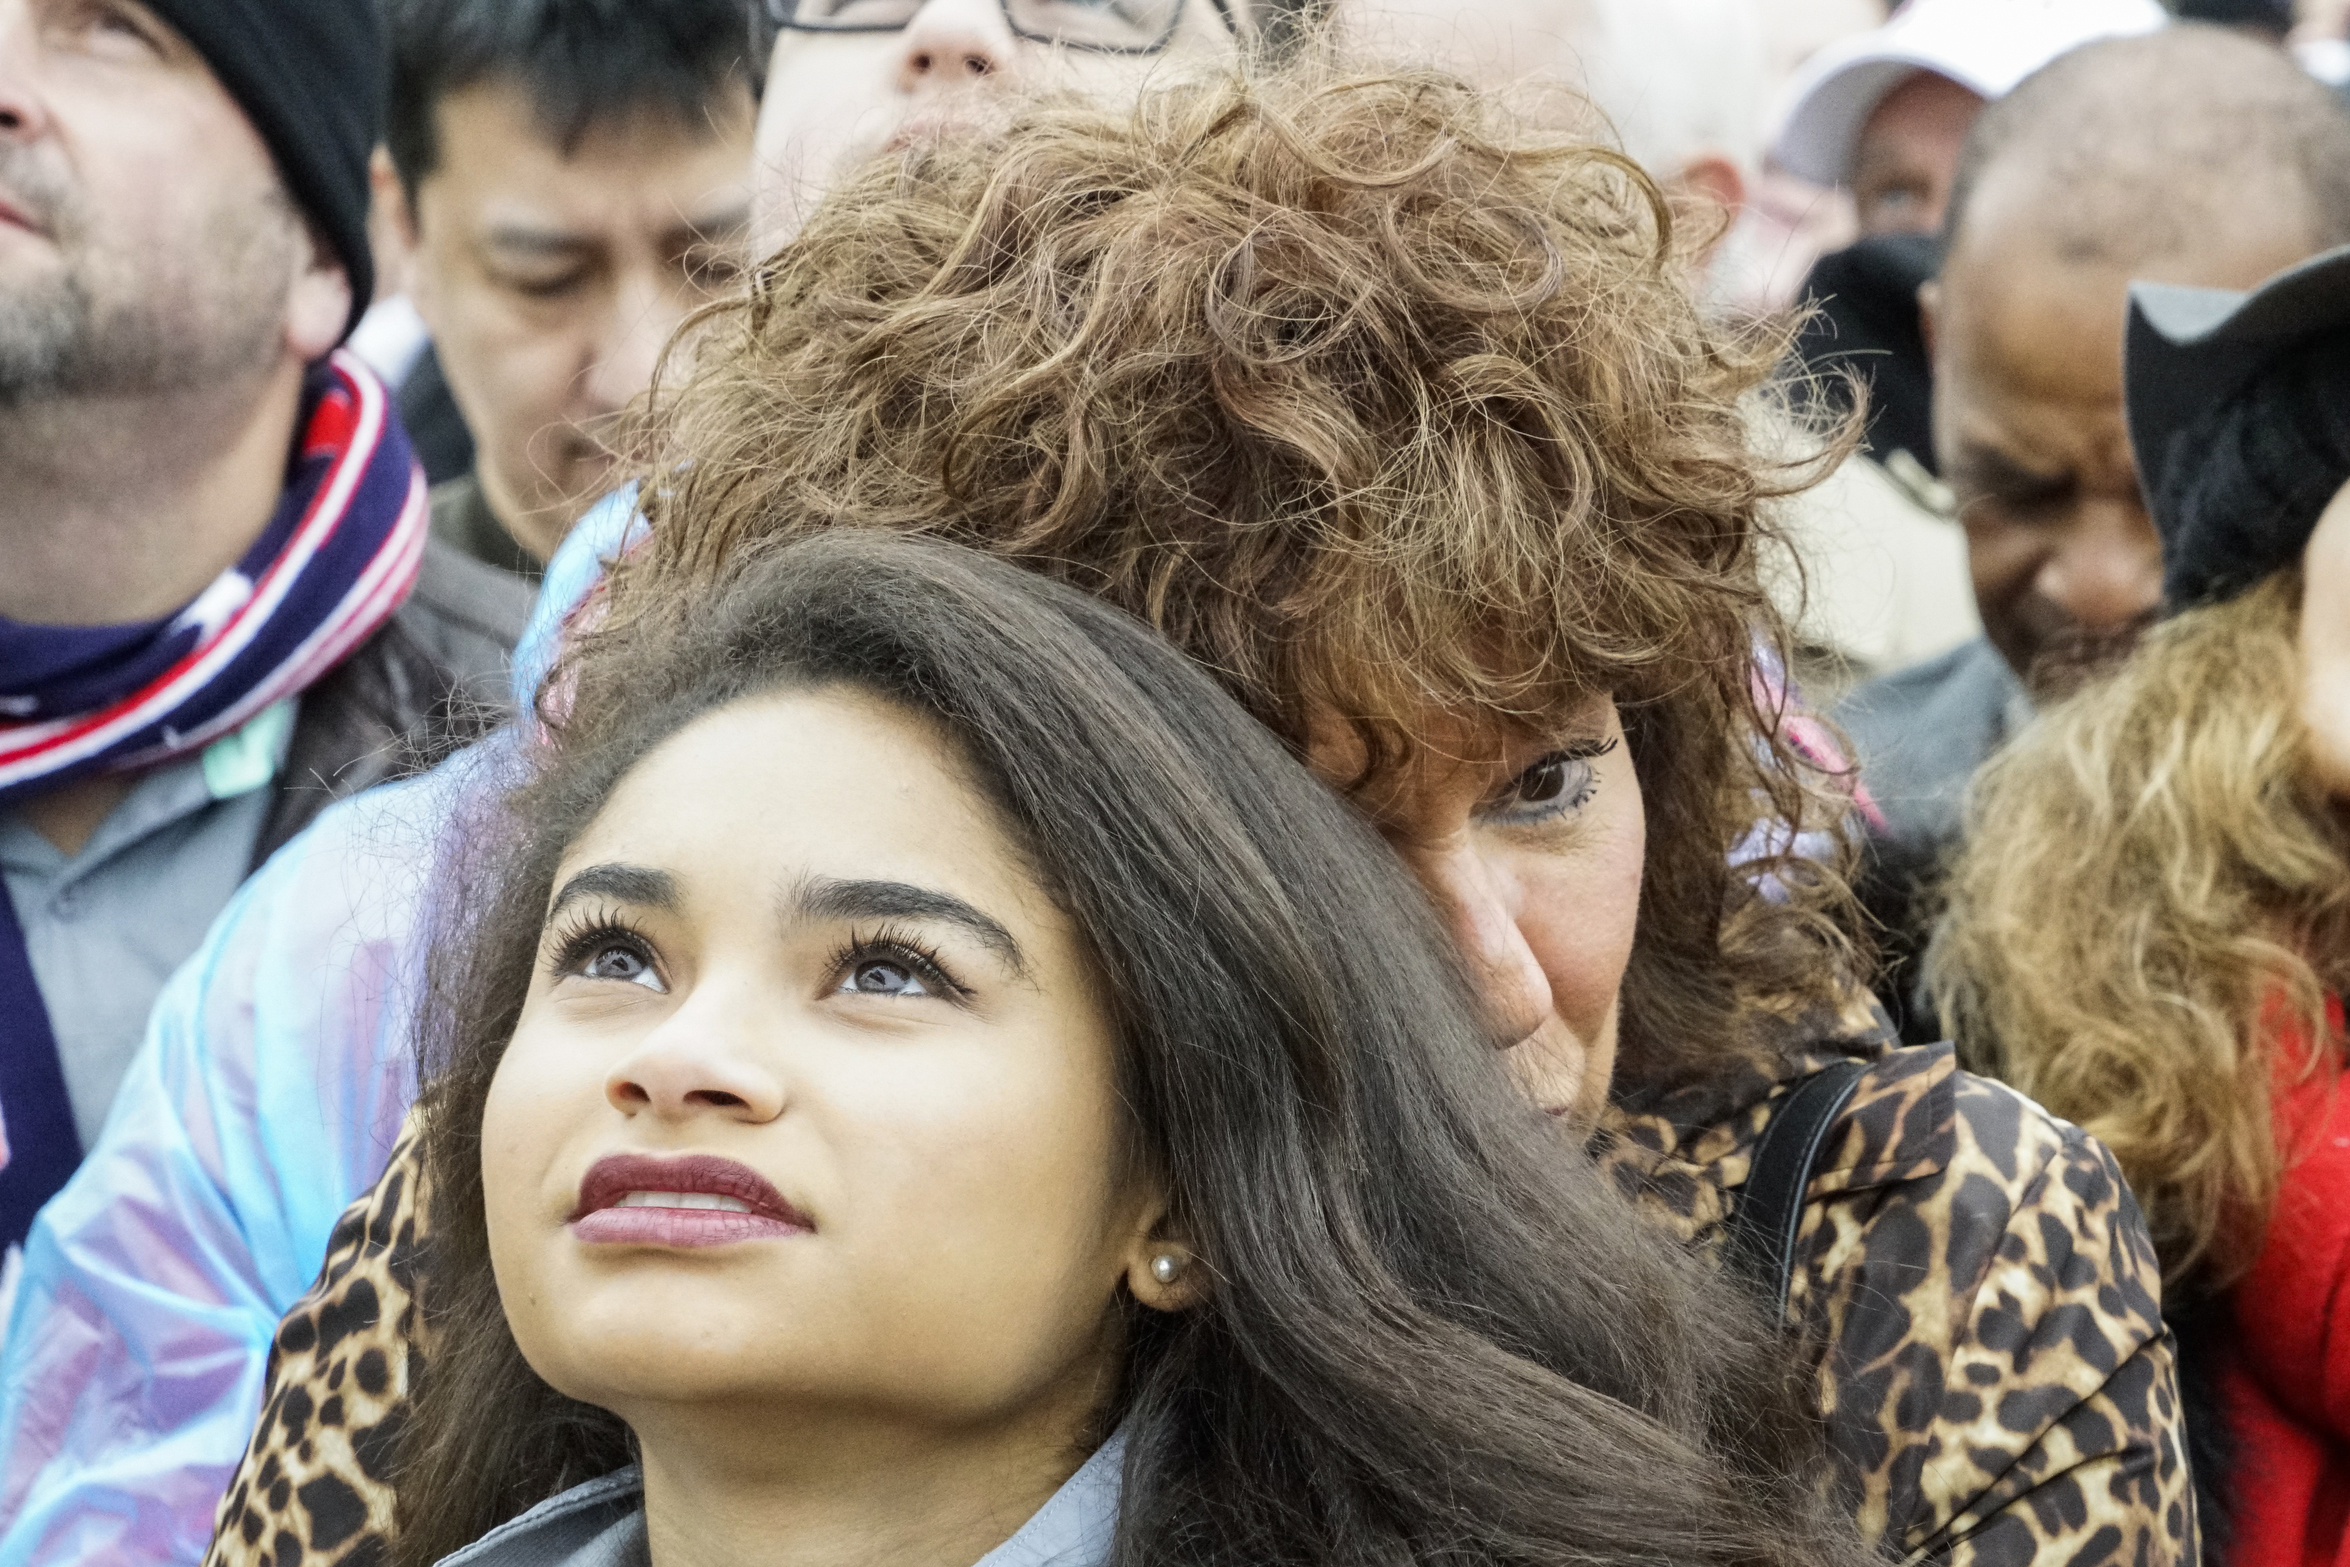 An attendee listens to the inauguration address of Donald Trump, after he was sworn in as the 45th President of the United States on the National Mall in Washington D.C., on Jan 20, 2017.